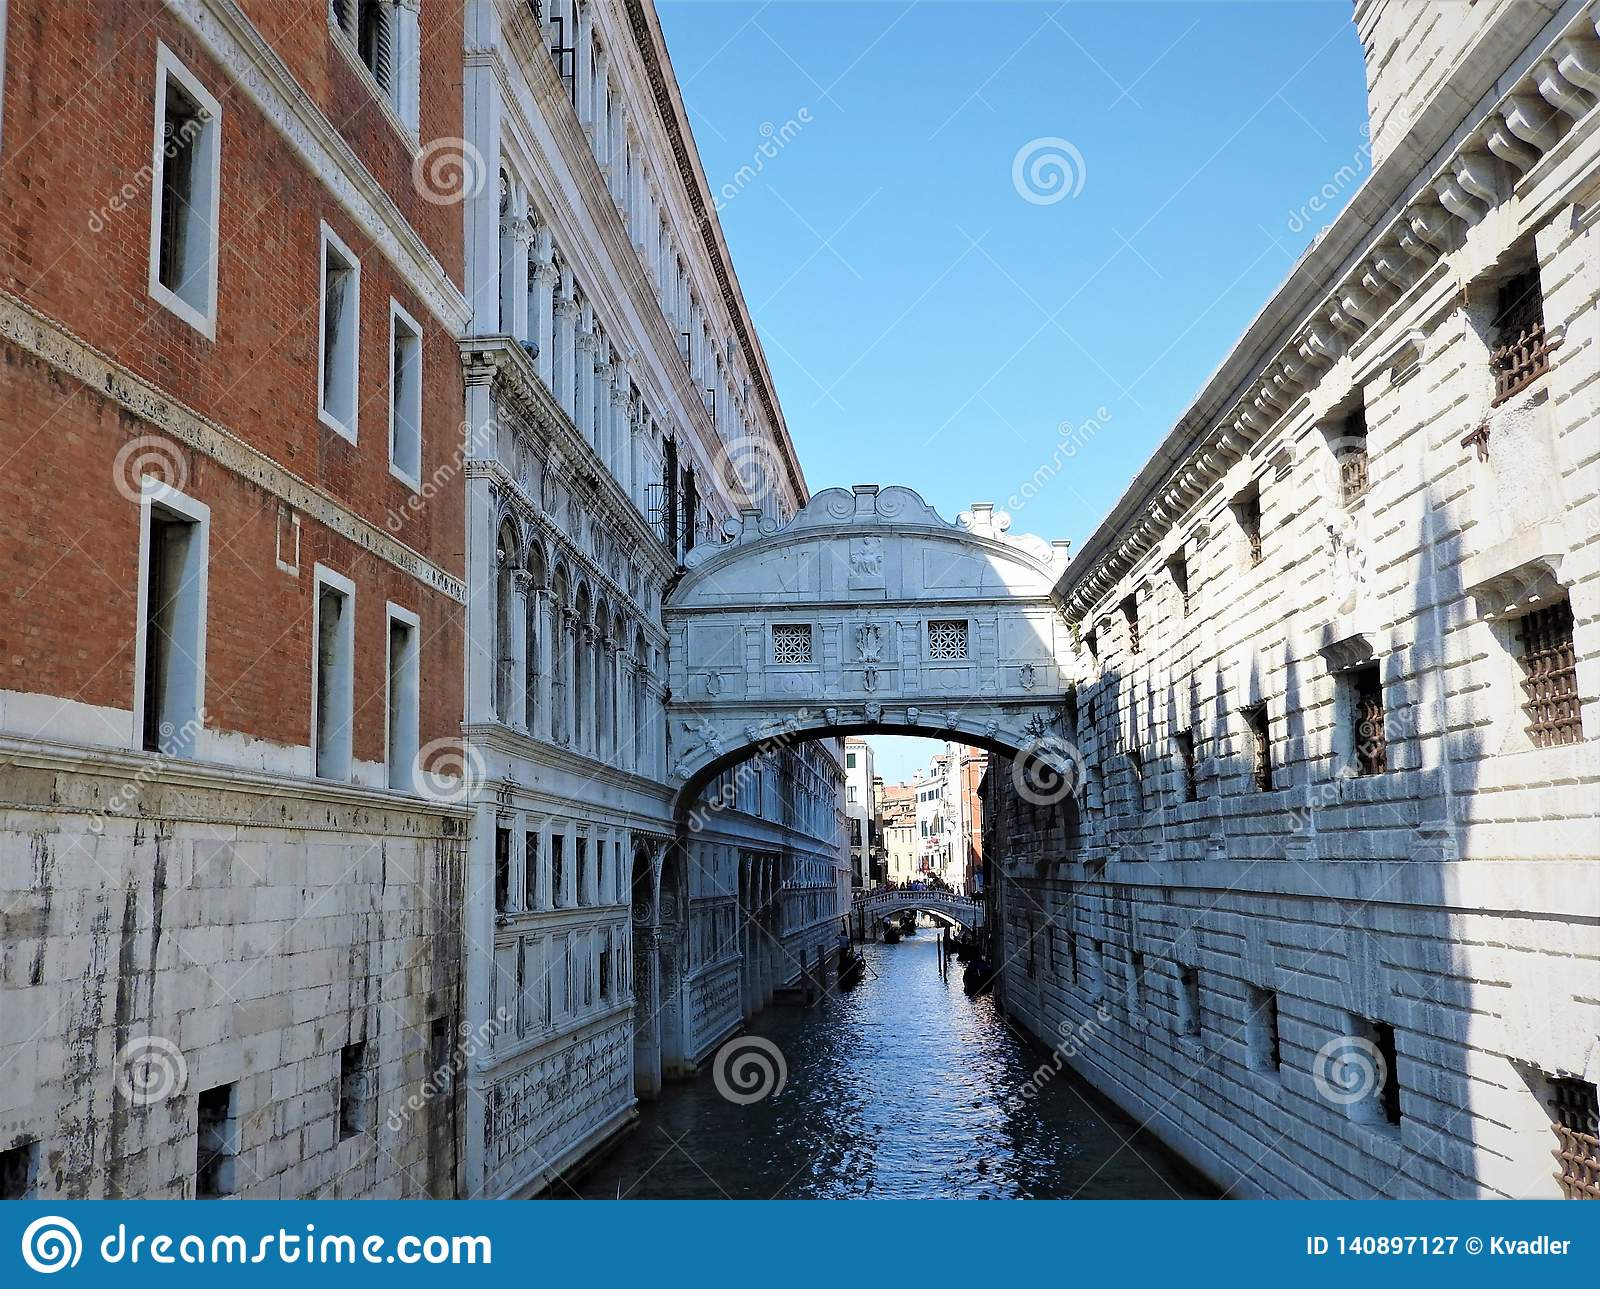 Colorful streets and canals of Venice on a clear day, Italy